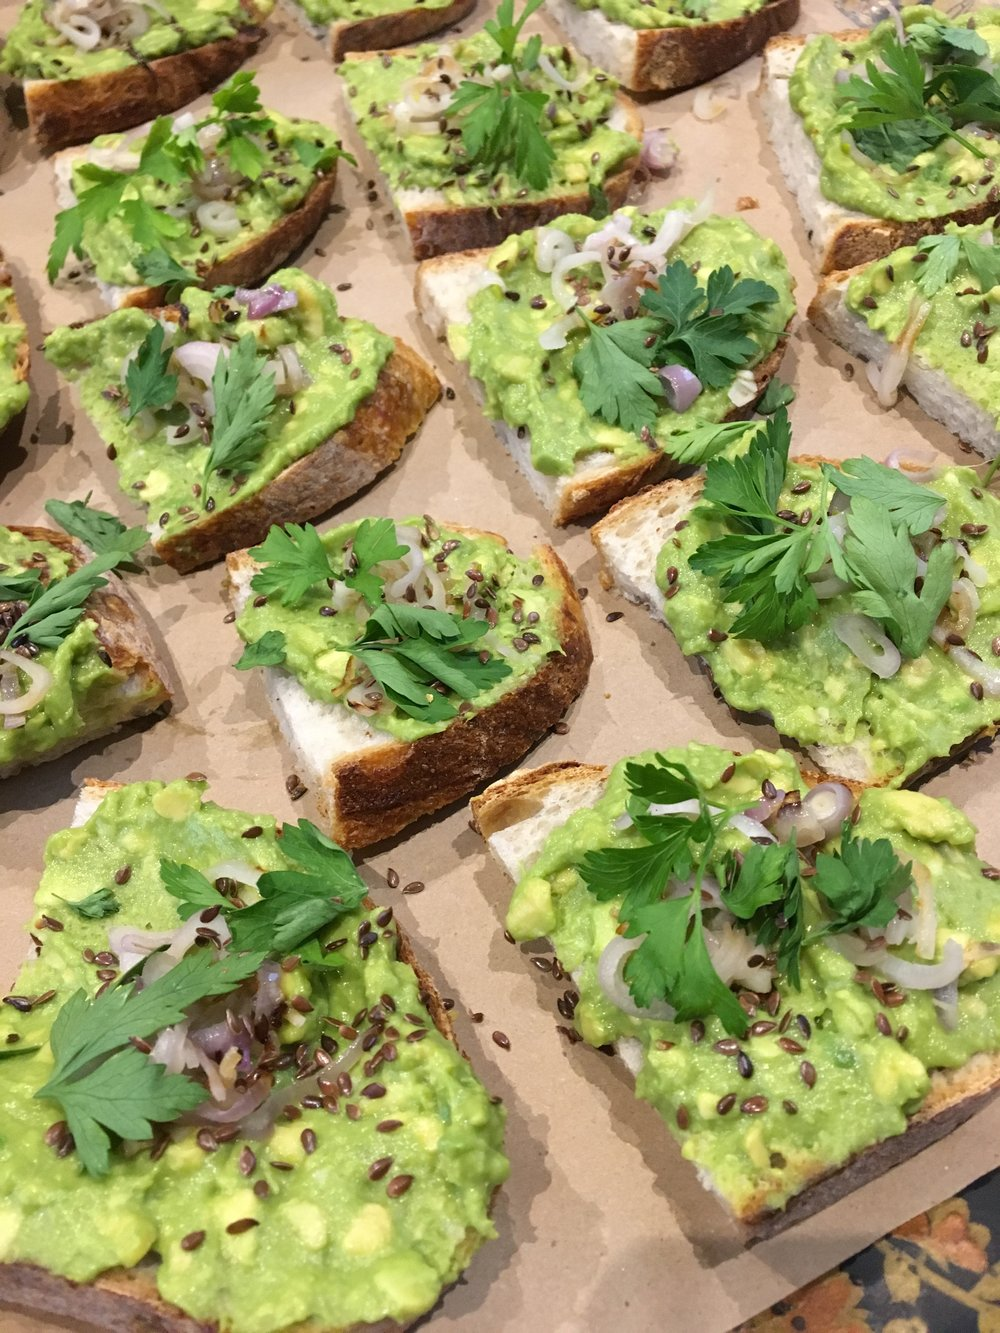 Avocado Toast from Kalecart at event